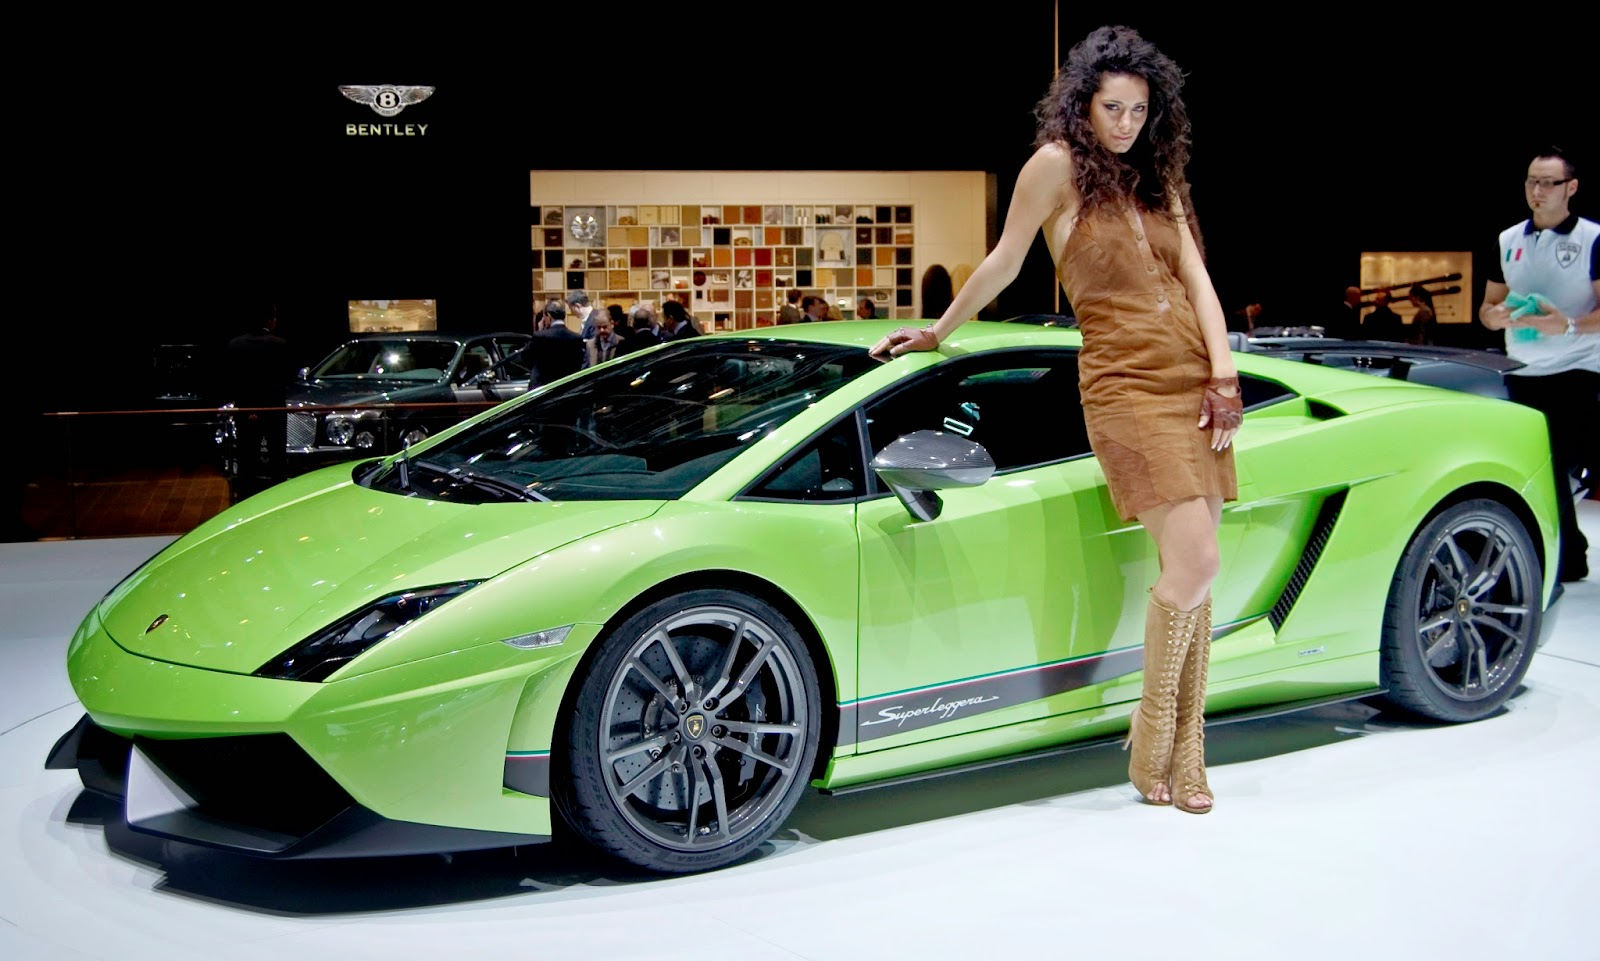 The Baby Lambo, envisioned in 1997, was introduced in 2003 as the Gallardo.